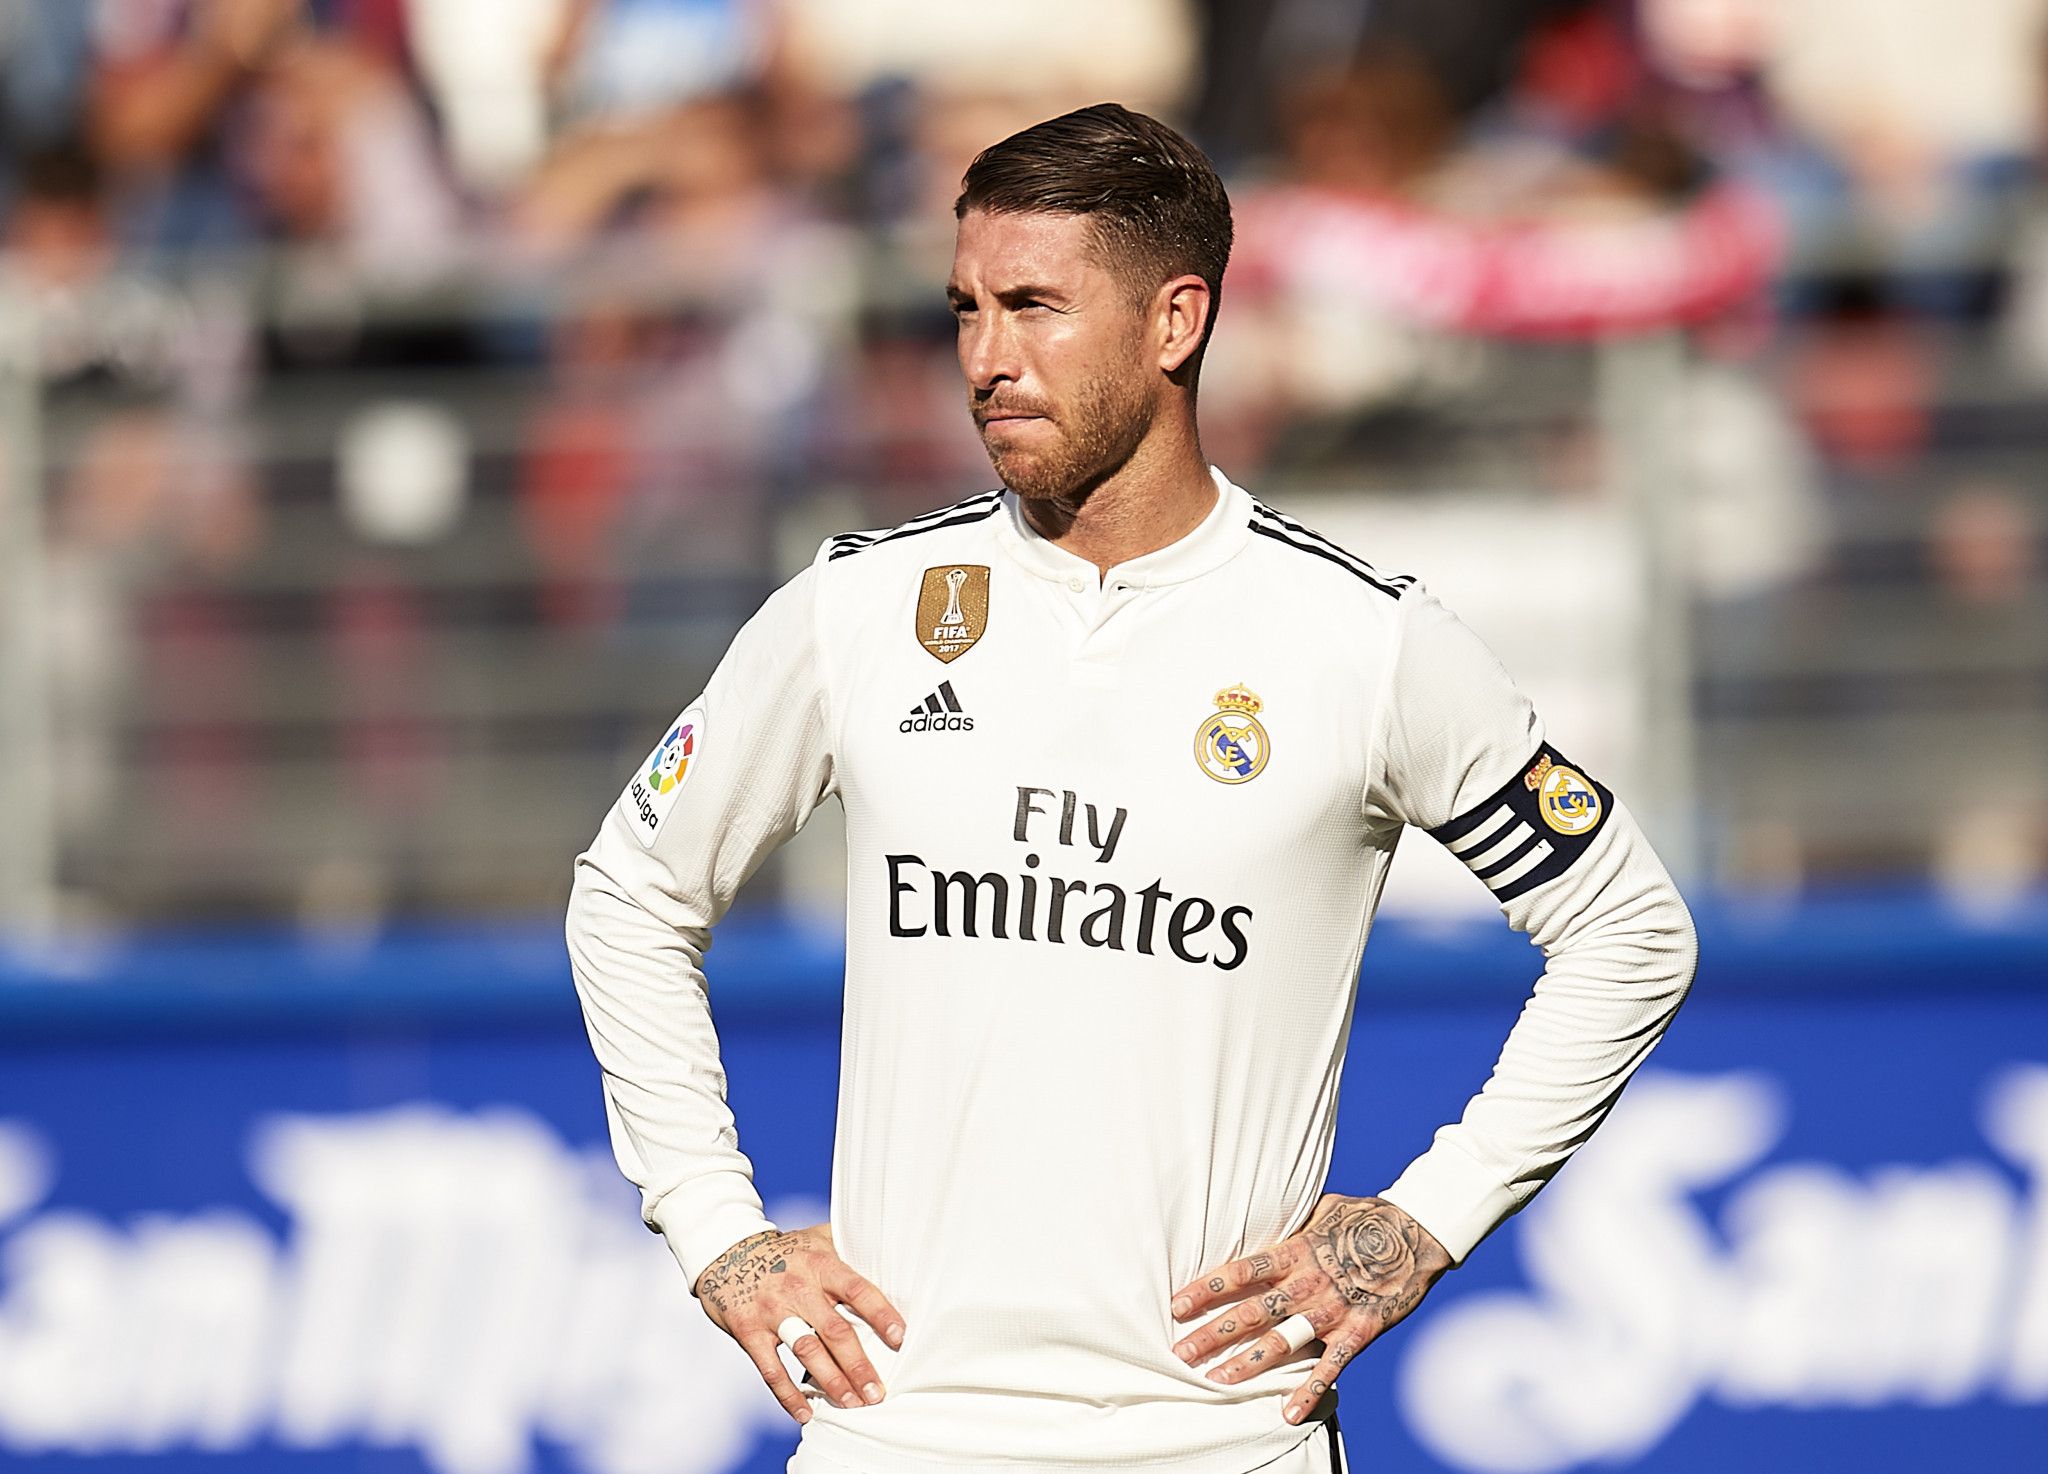 Sergio Ramos said he was vehemently opposed to doping ©Getty Images